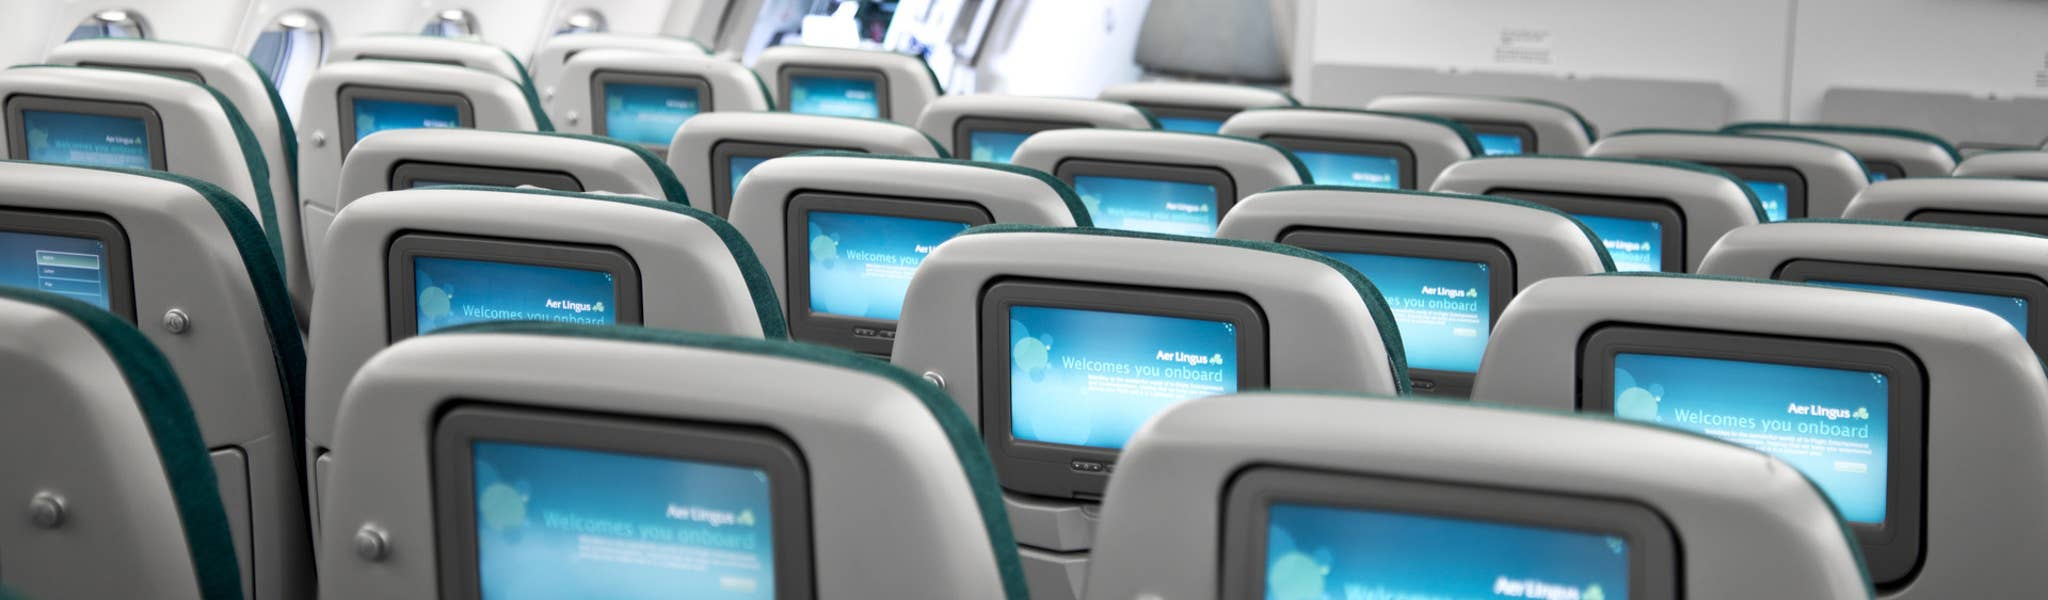 Entertainment - Aer Lingus